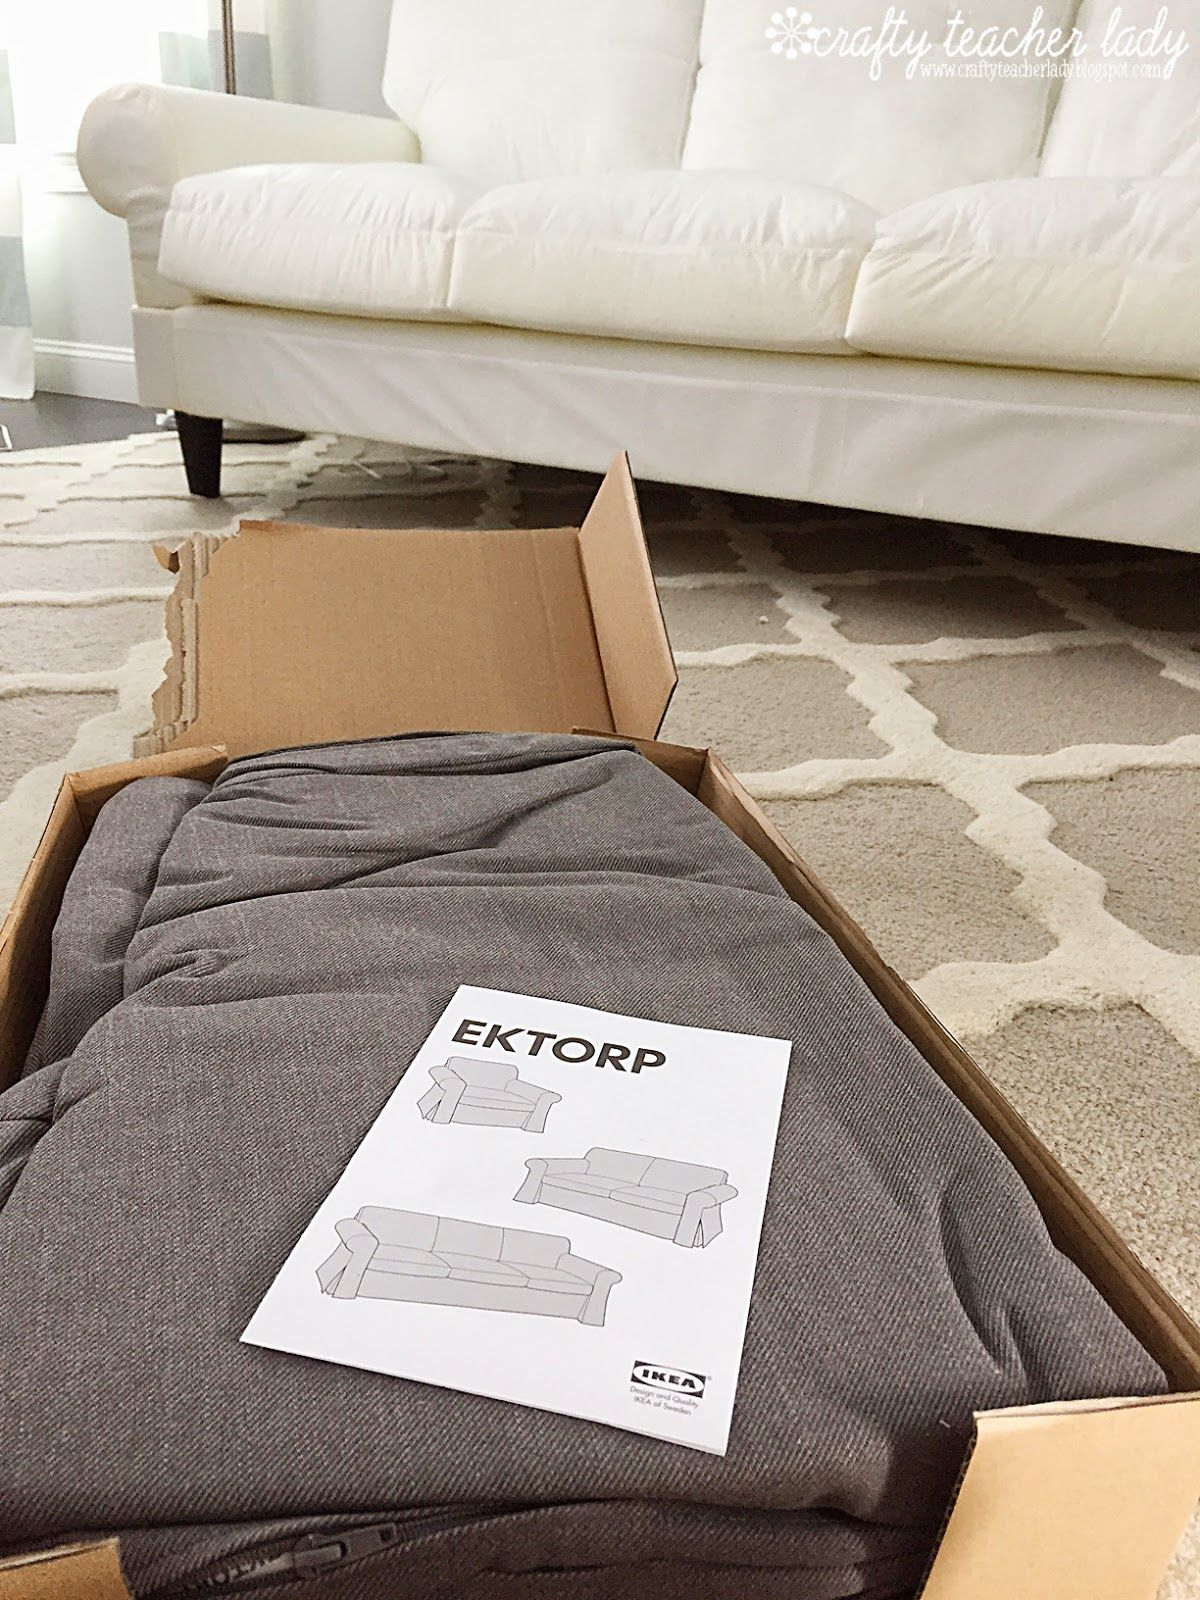 Full Detailed Review Of The IKEA Ektorp Sofa Series With Pictures Of Used  Sofa Next To Brand New Sofa As Well As Pictures Of The Assembly Process.